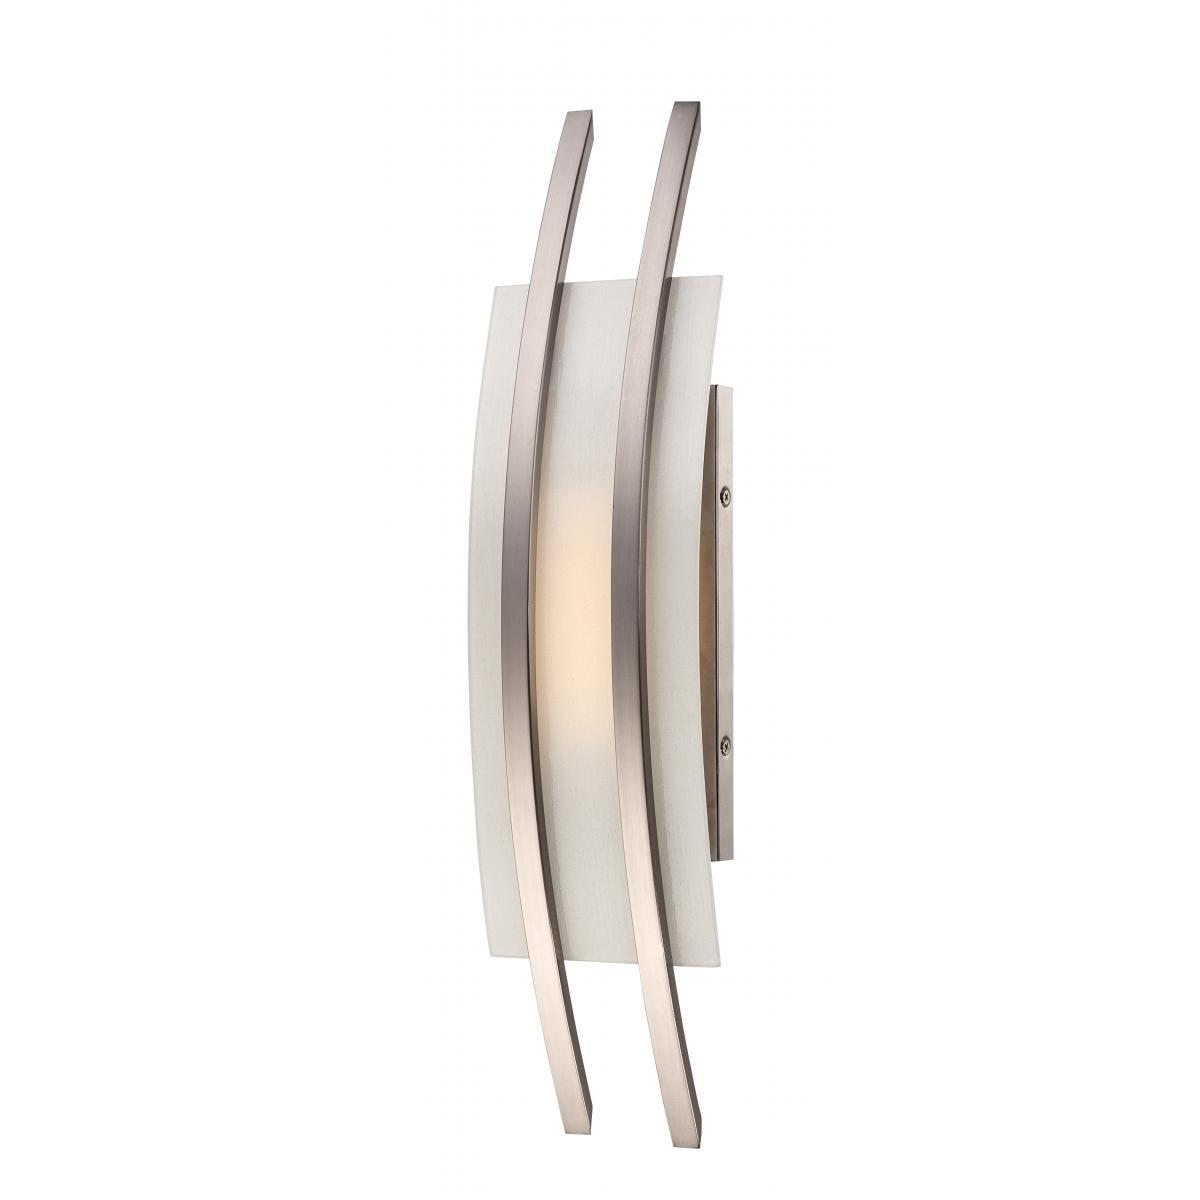 Trax 1 Module Wall Sconce with Frosted Glass Wall Nuvo Lighting